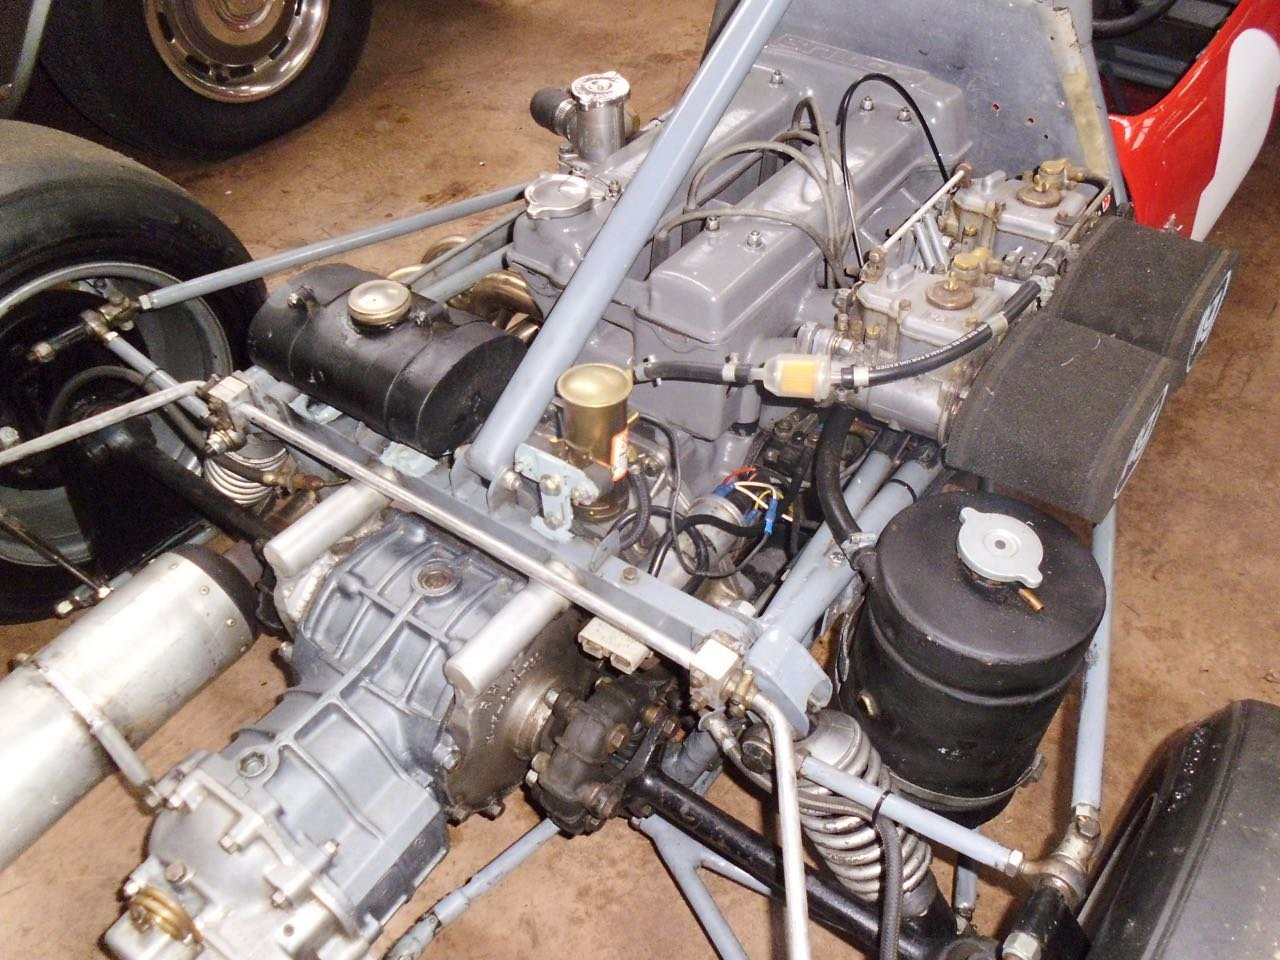 1965 Lotus/Brabham? F2 Car For Sale (picture 4 of 6)